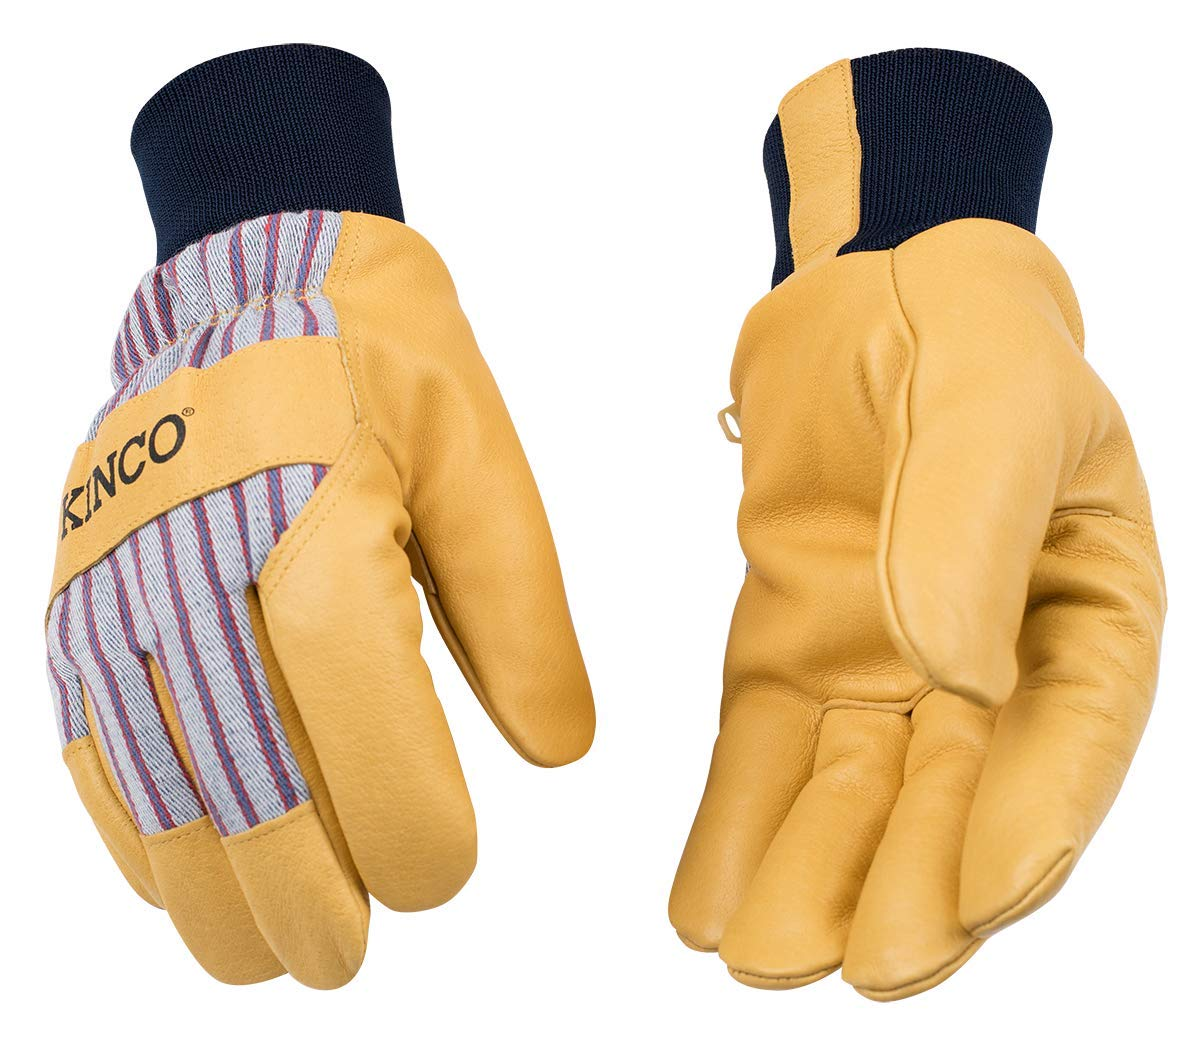 Kinco - Premium Leather Work Free shipping anywhere in the nation Gloves Heatkeep Ski and Sacramento Mall Insulation